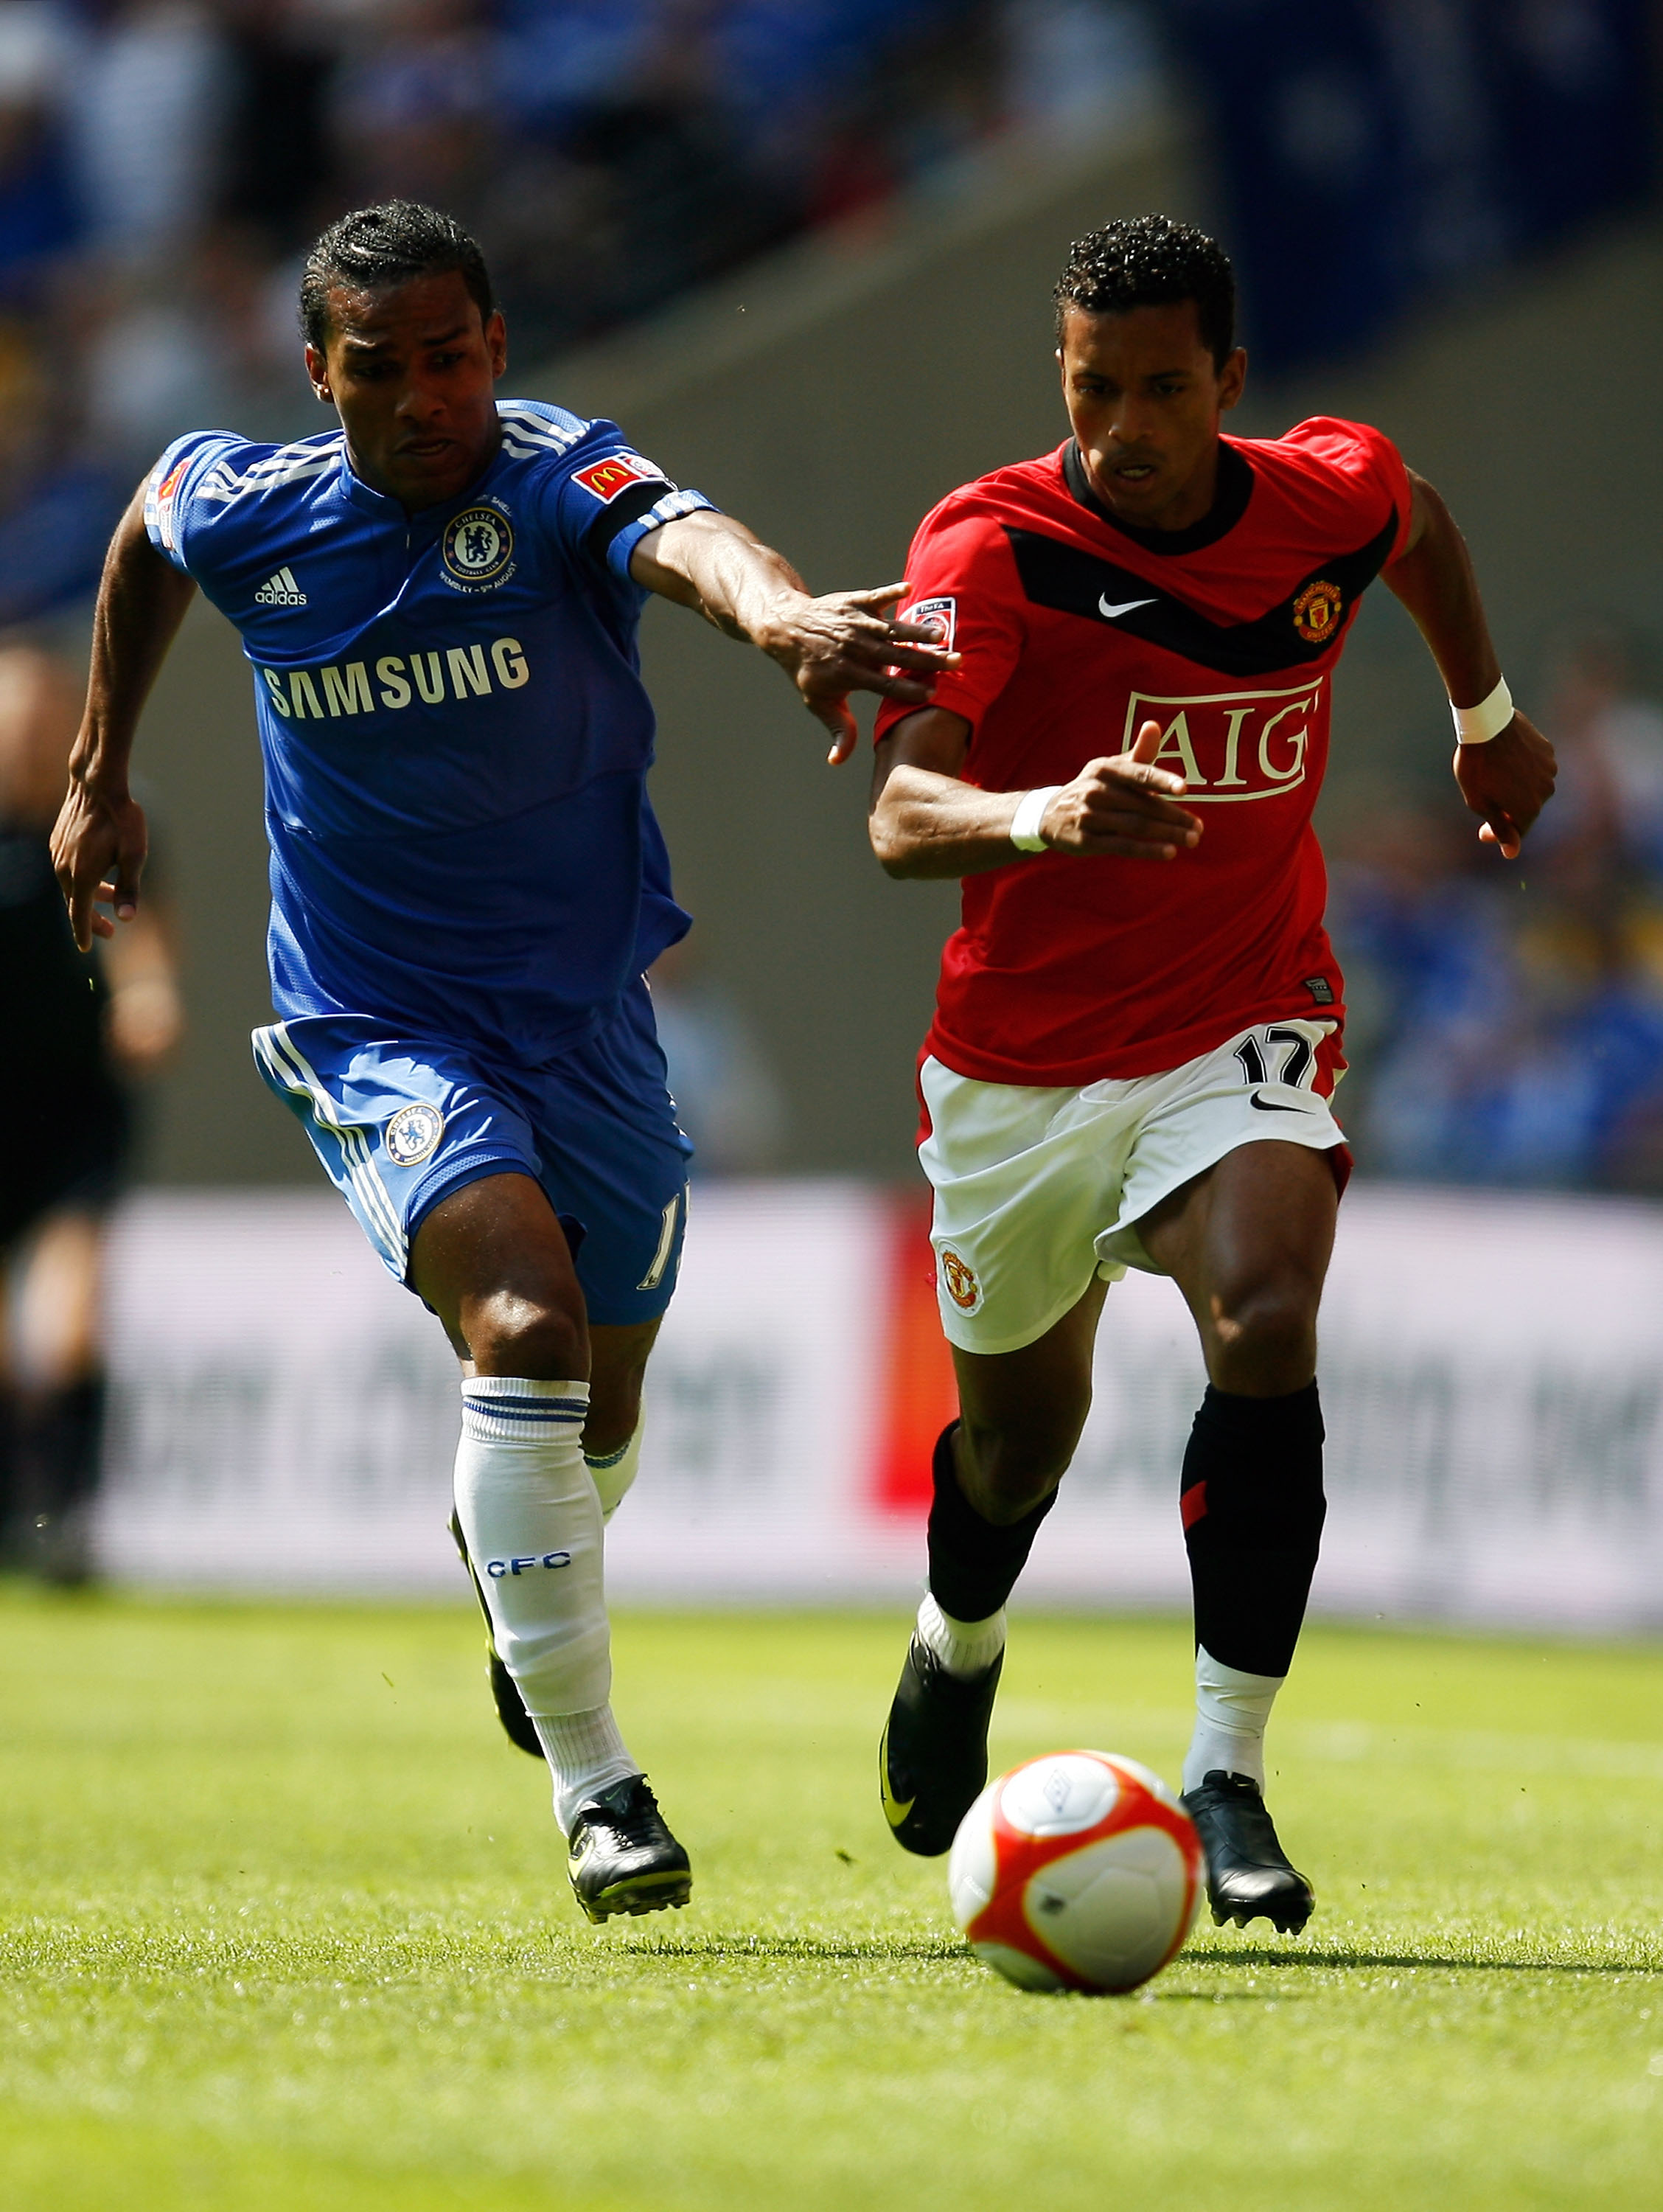 LONDON, ENGLAND - AUGUST 09:  Luis Nani of Manchester United takes on Florent Malouda of Chelsea during the FA Community Shield match between Manchester United and Chelsea at Wembley Stadium on August 9, 2009 in London, England.  (Photo by Paul Gilham/Get